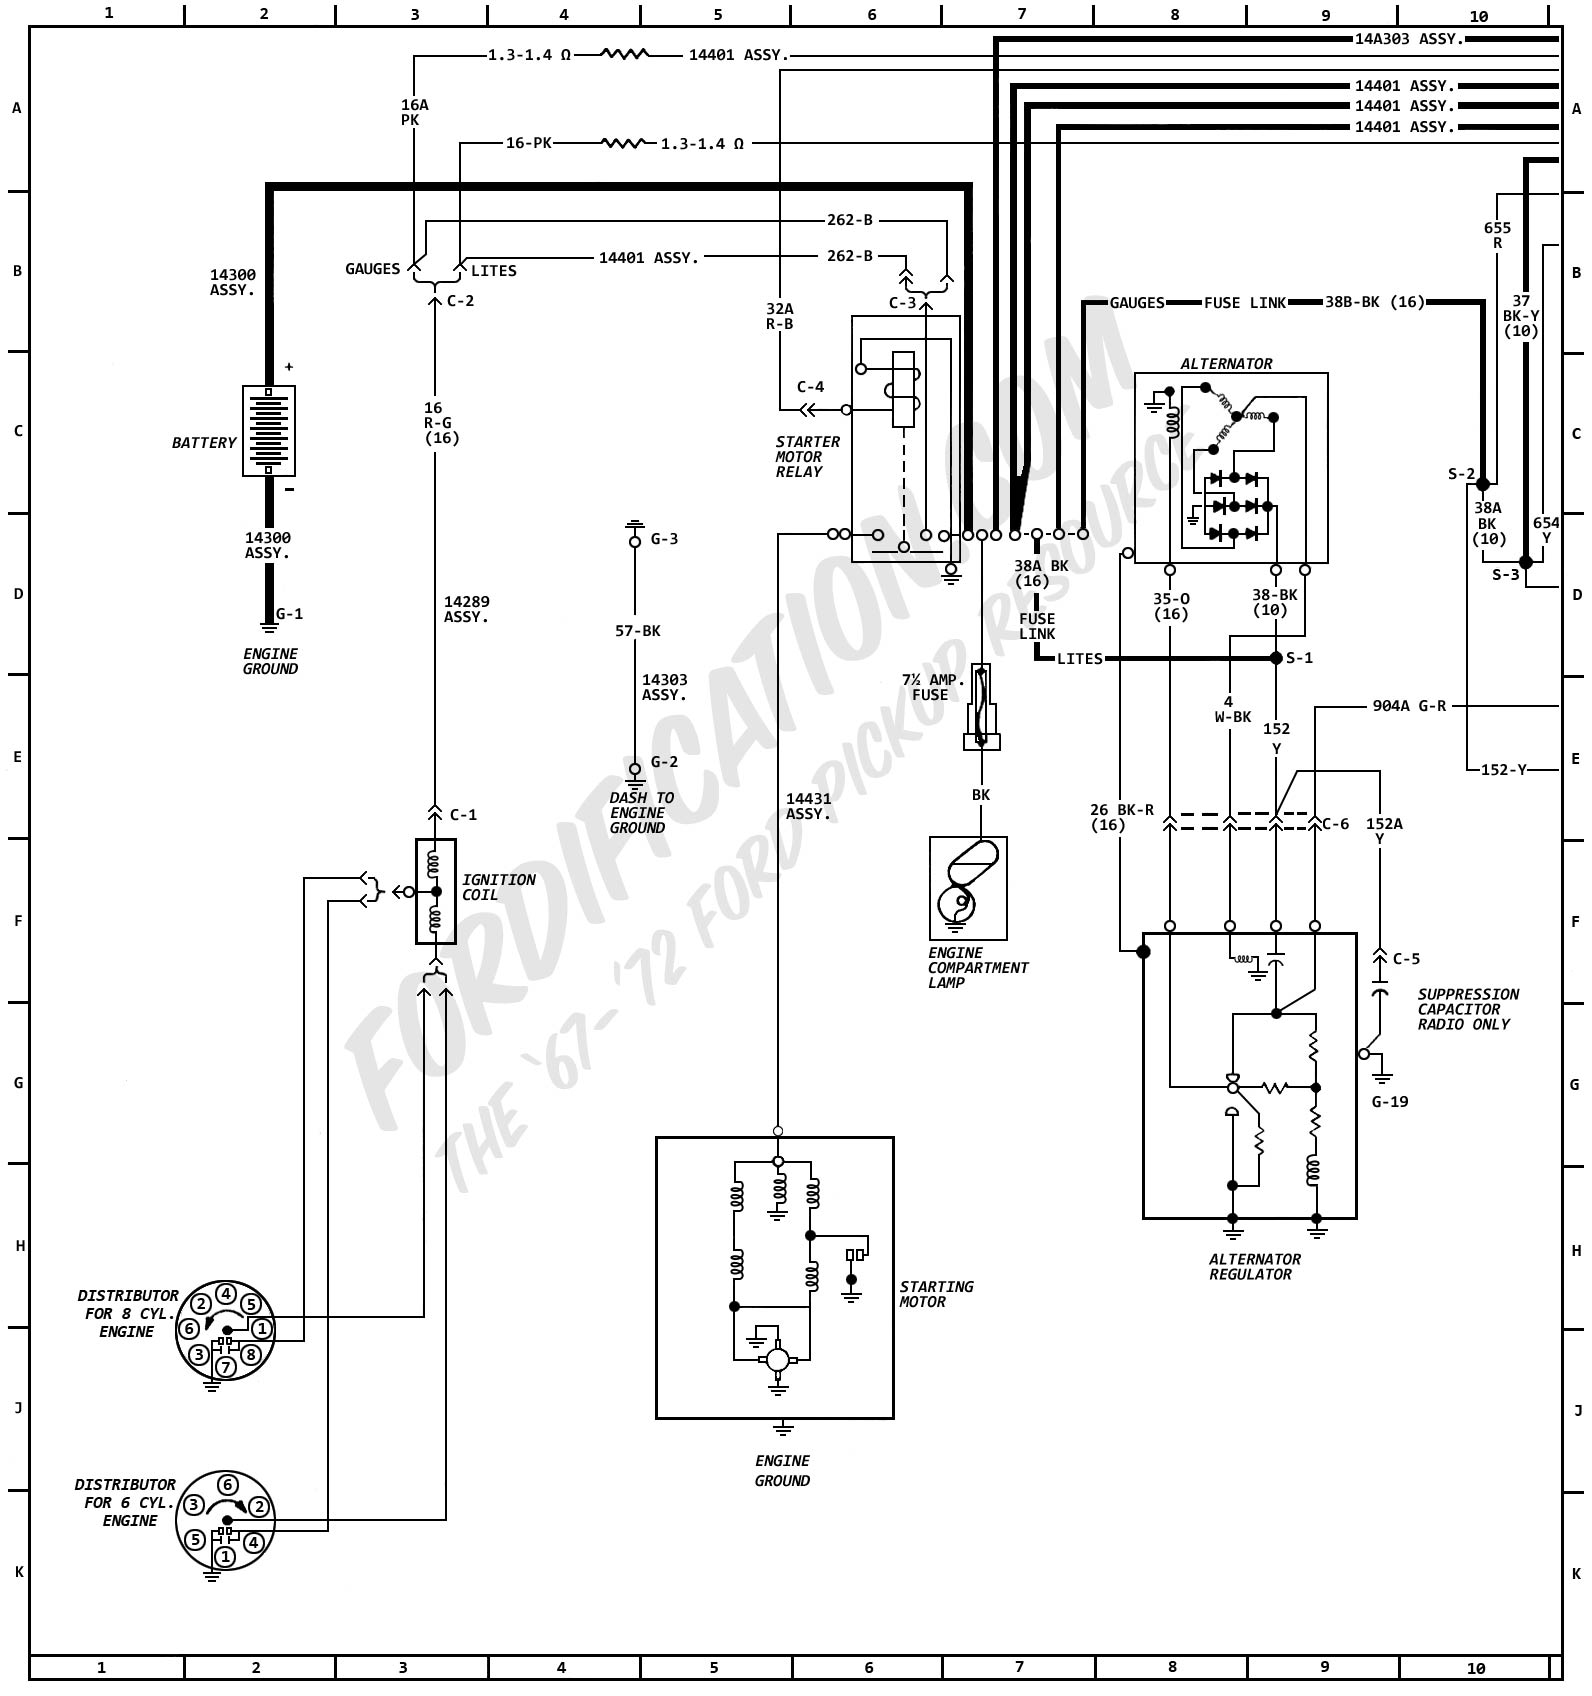 1970 Ford Ignition Wiring - All Wiring Diagram